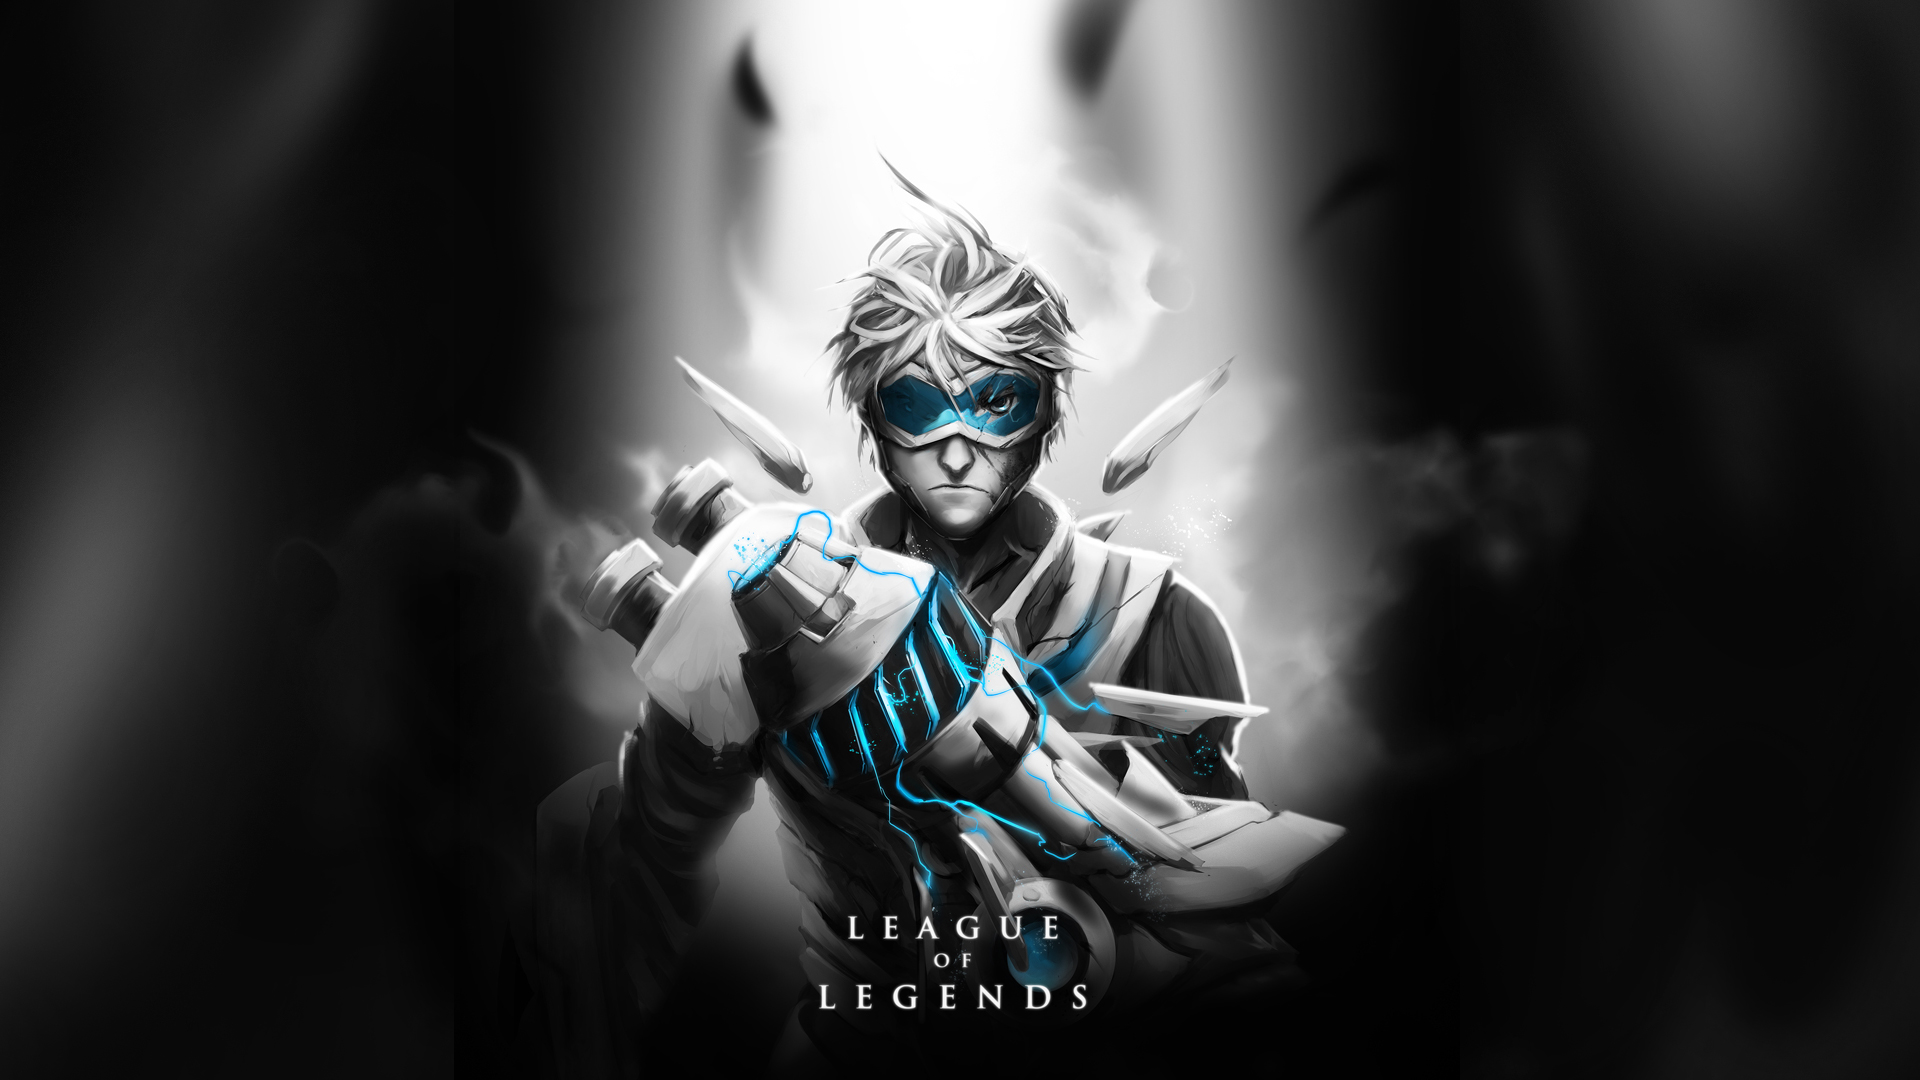 Pulsefire Ezreal League Of Legends Wallpapers HD 1920x1080